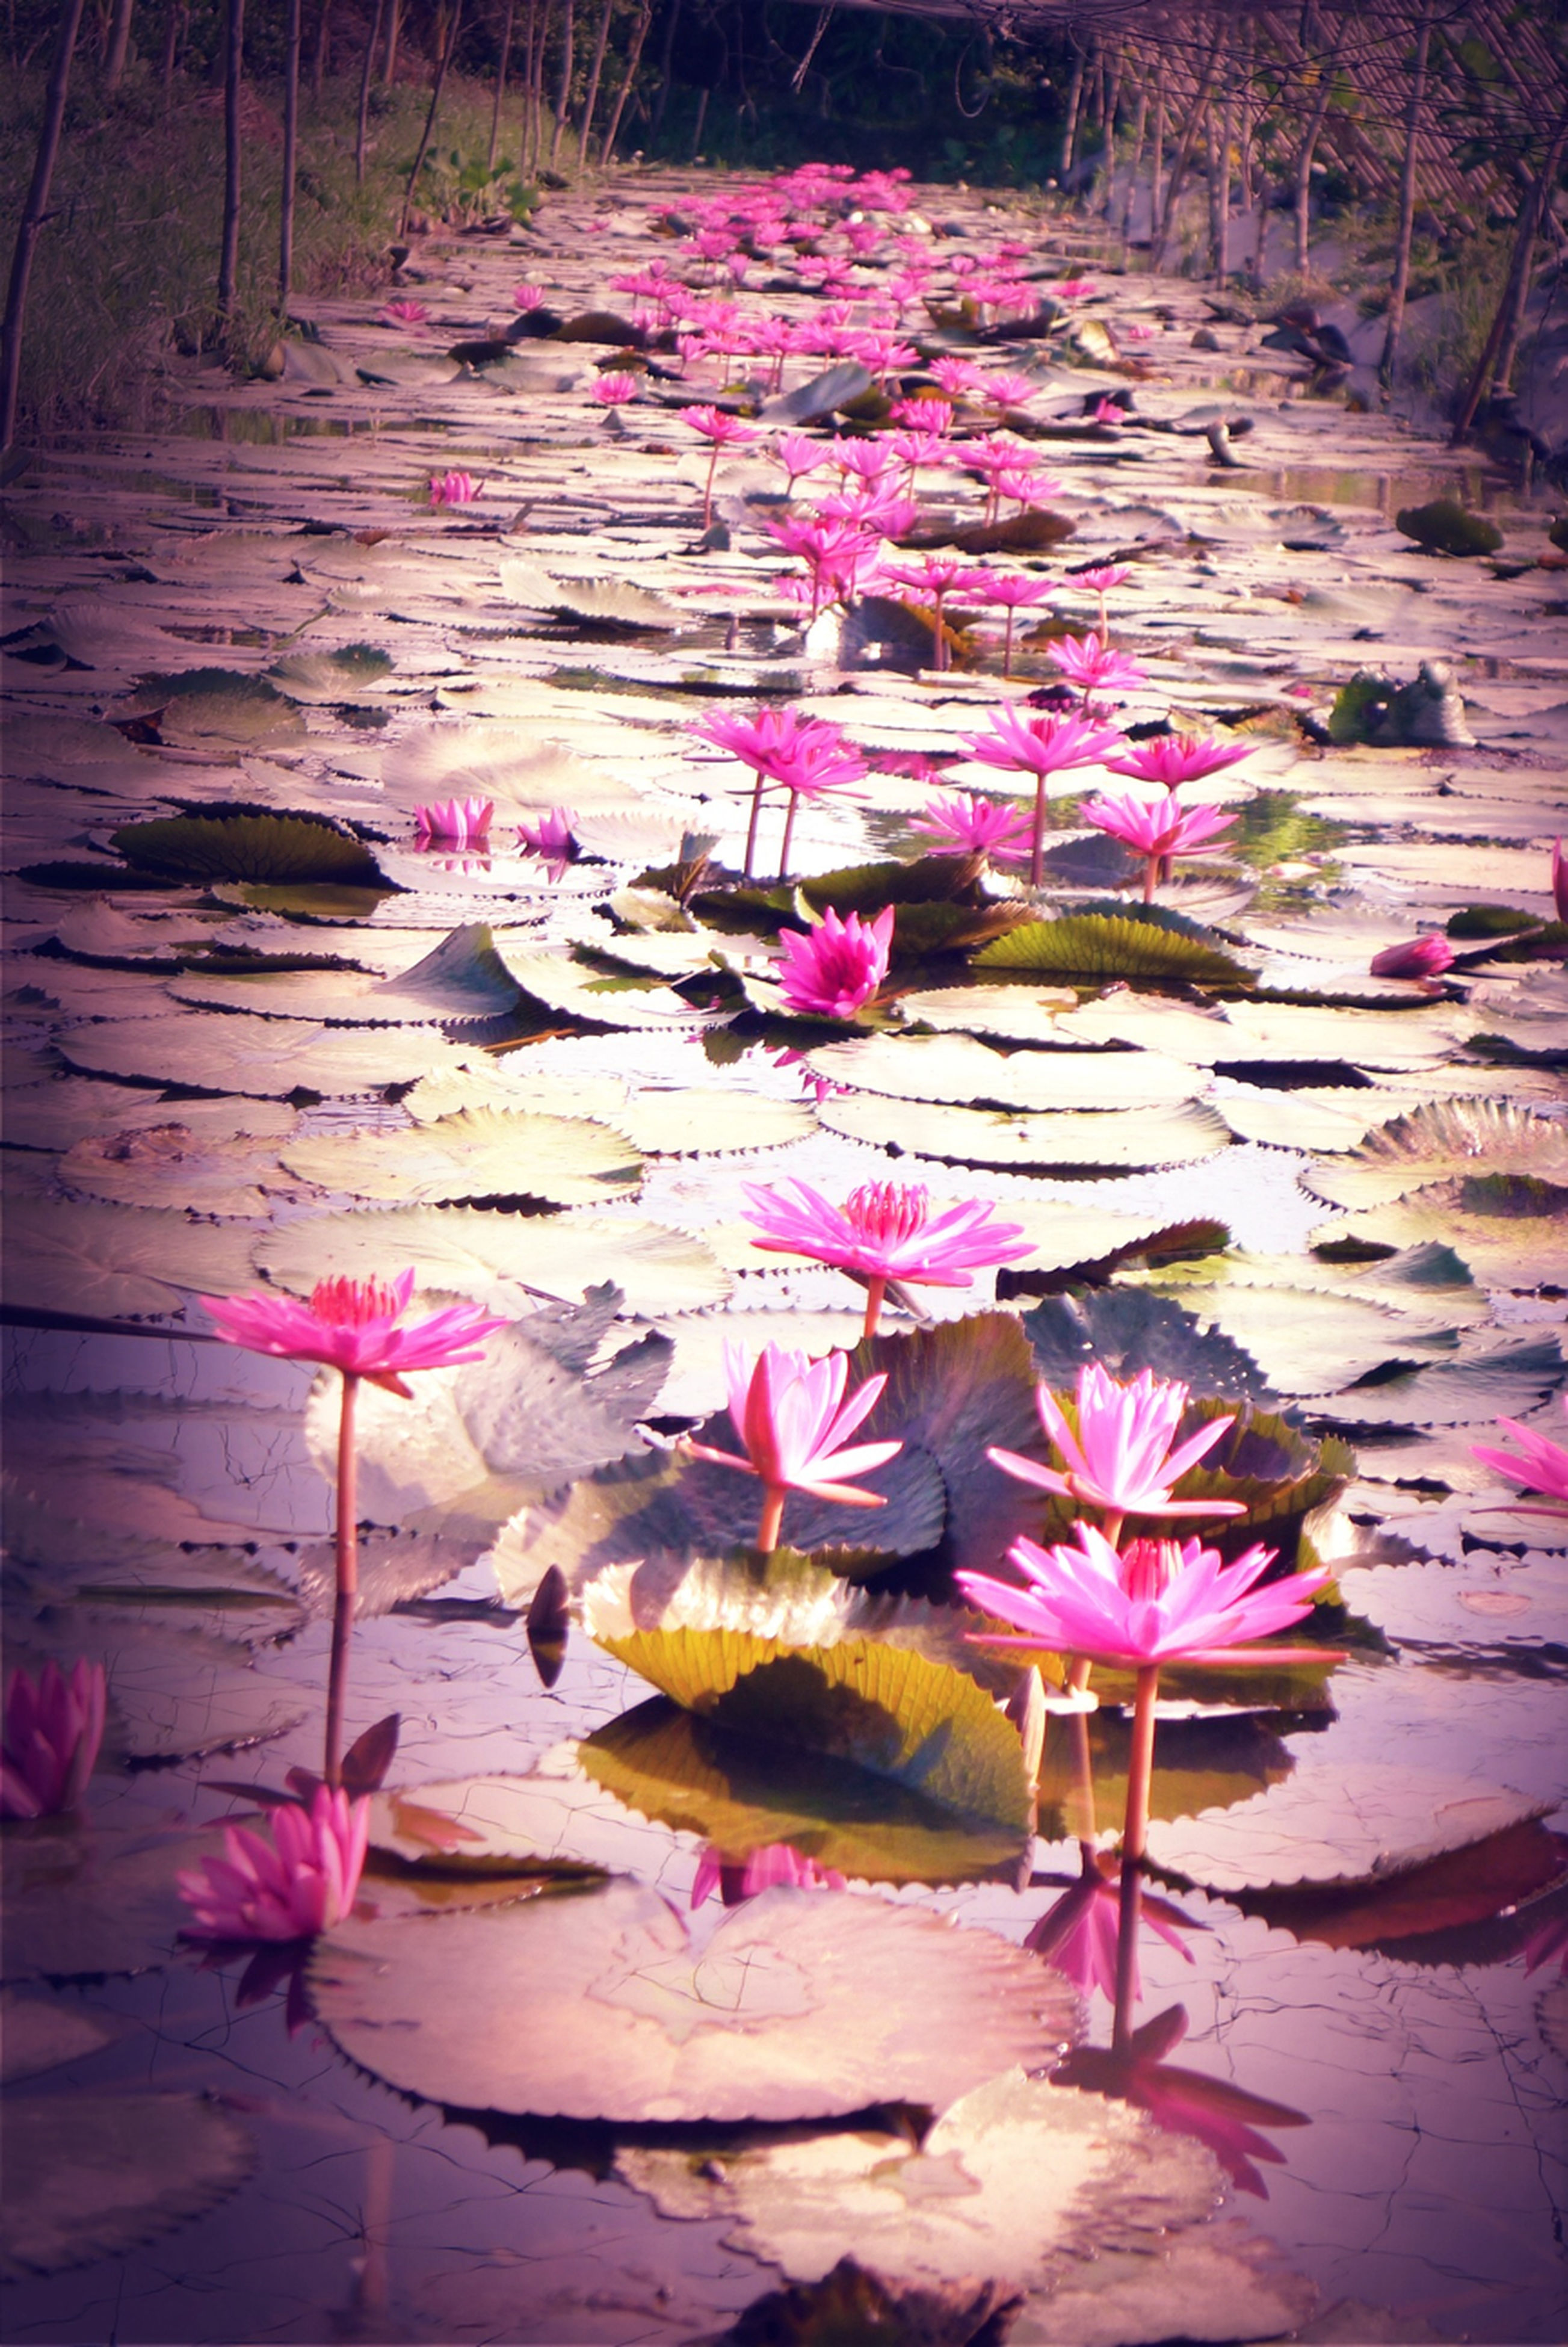 flower, pink color, petal, fragility, freshness, nature, leaf, beauty in nature, fallen, pink, purple, wood - material, high angle view, pond, water lily, outdoors, flower head, day, no people, close-up